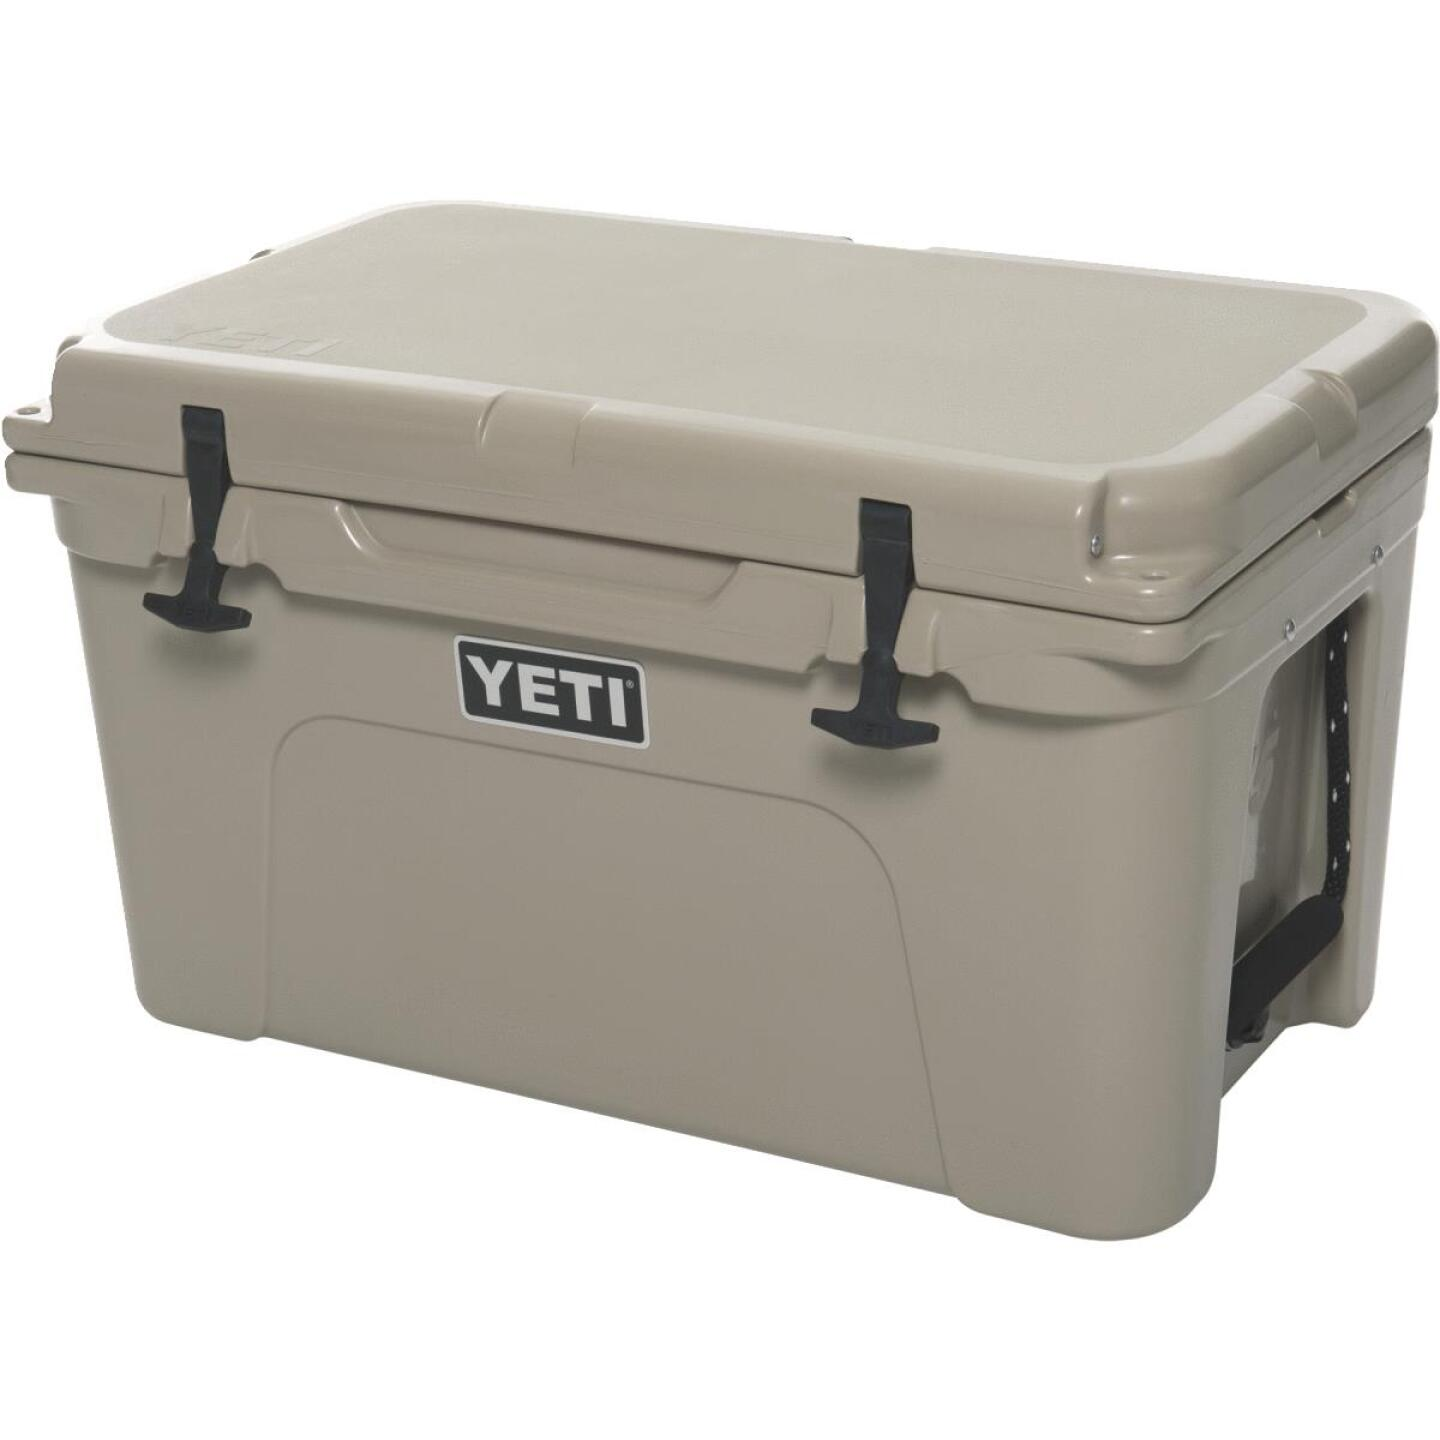 Yeti Tundra 45, 28-Can Cooler, Tan Image 1